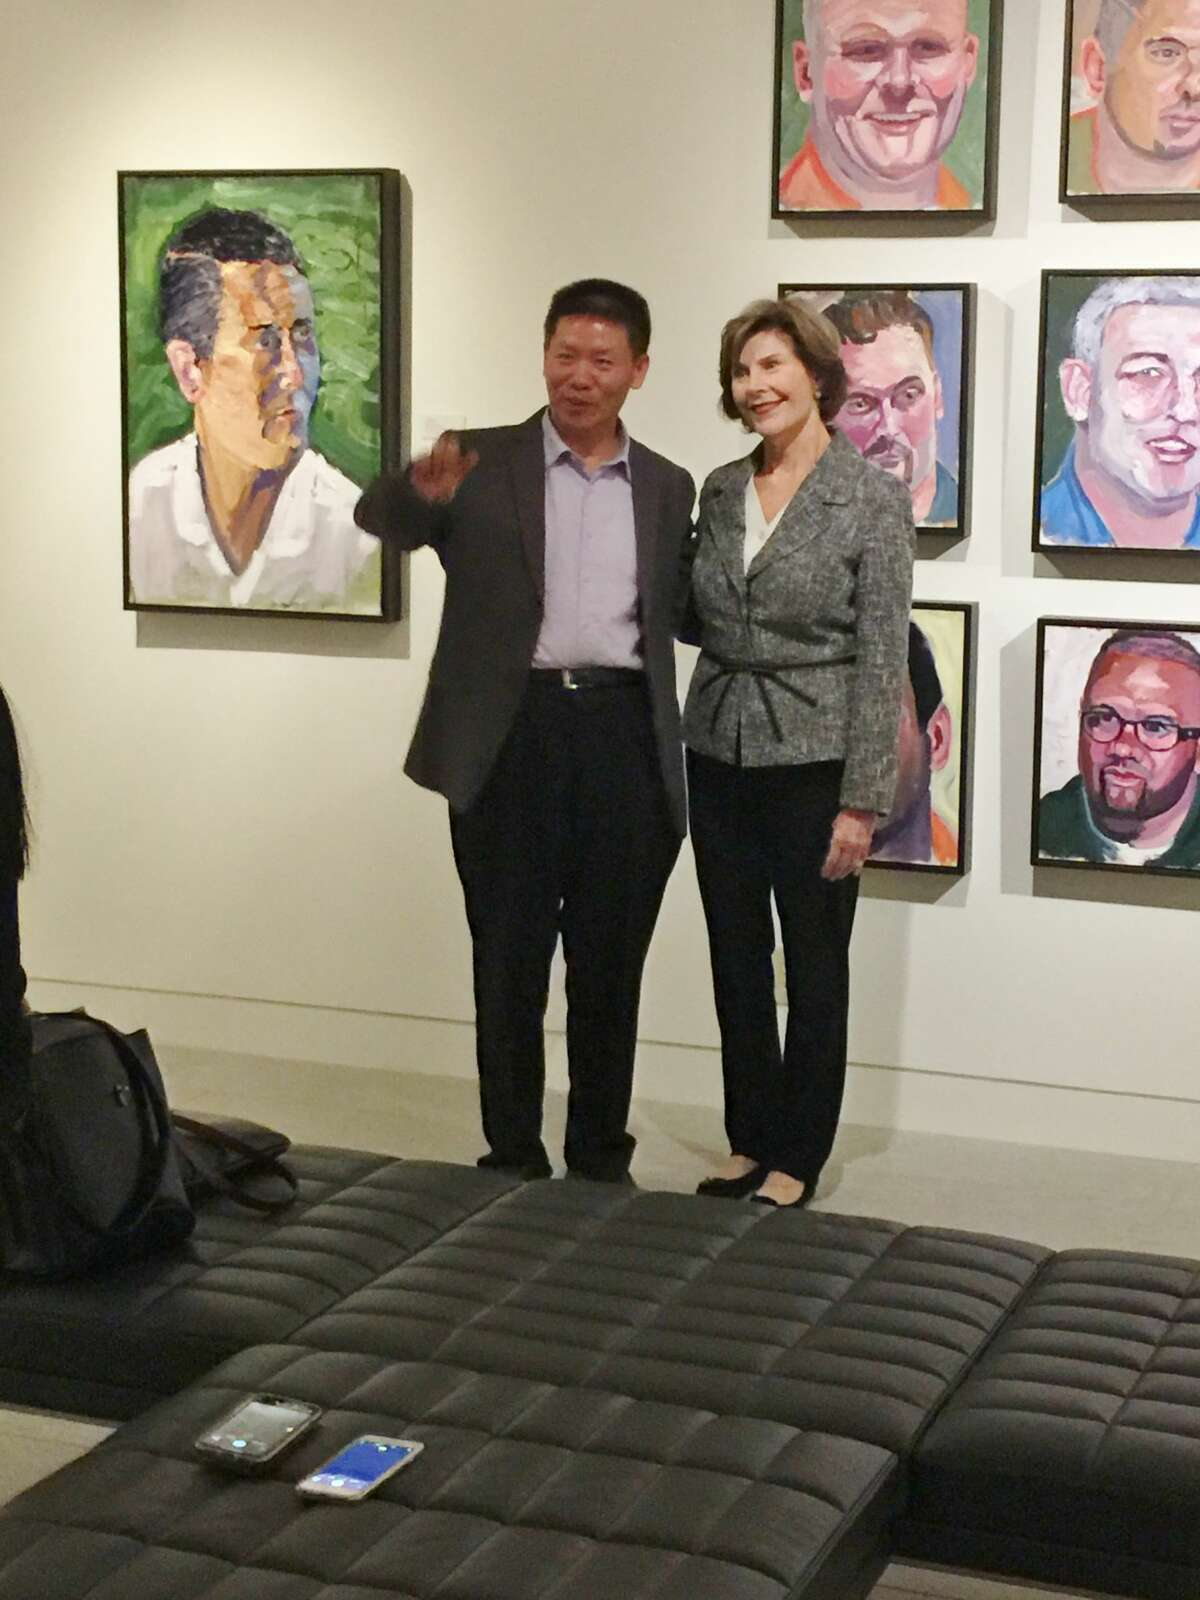 """Former First Lady Laura Bush at the Museum of the Southwest which is hosting """"Portraits of Courage,"""" an exhibition of paintings by George W. Bush."""